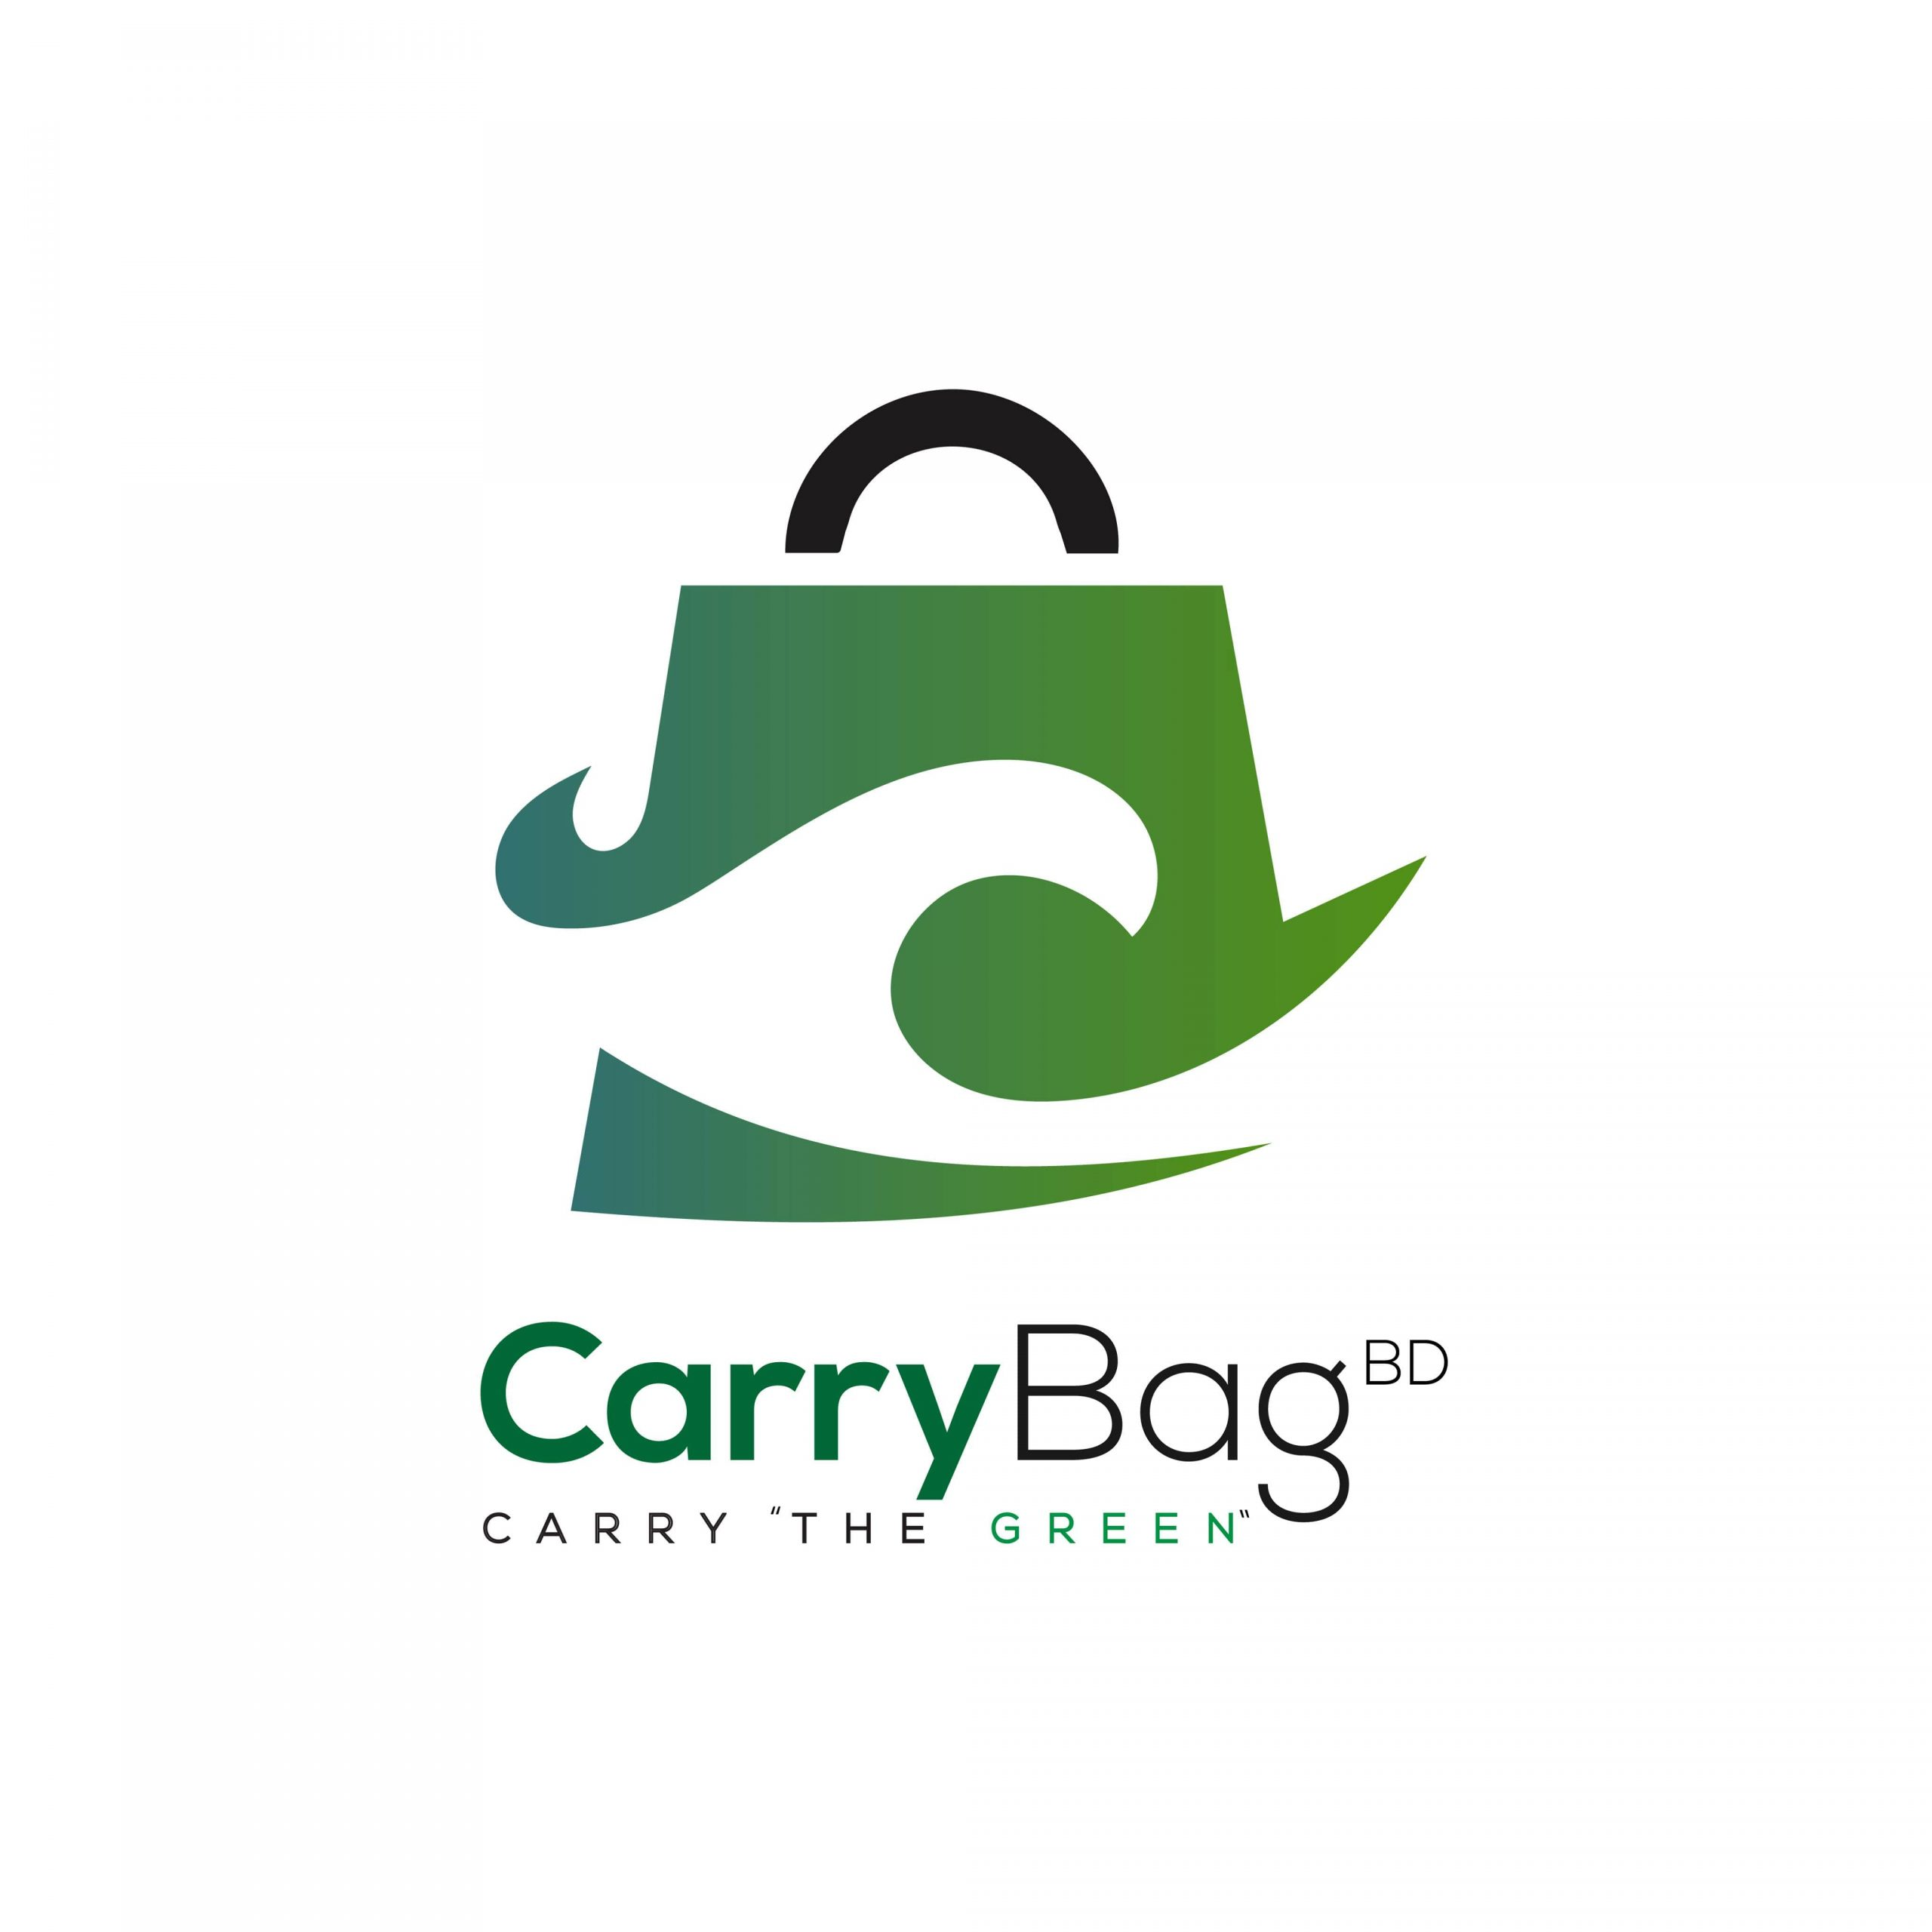 Carry Bag BD